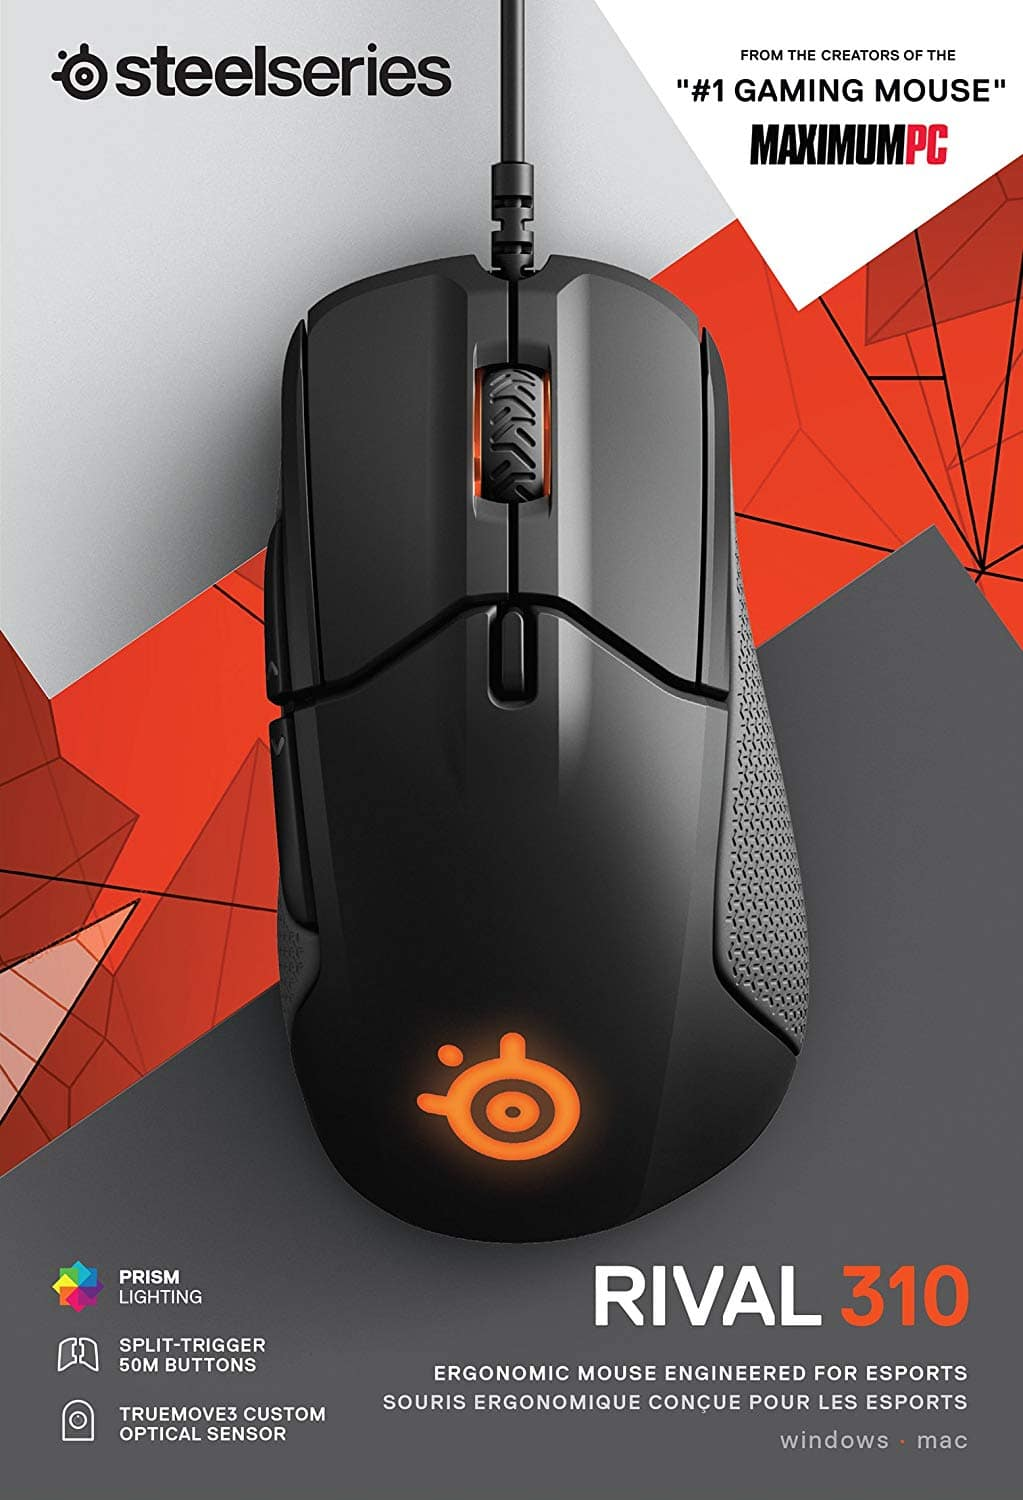 SteelSeries Rival 310 Gaming Mouse $24